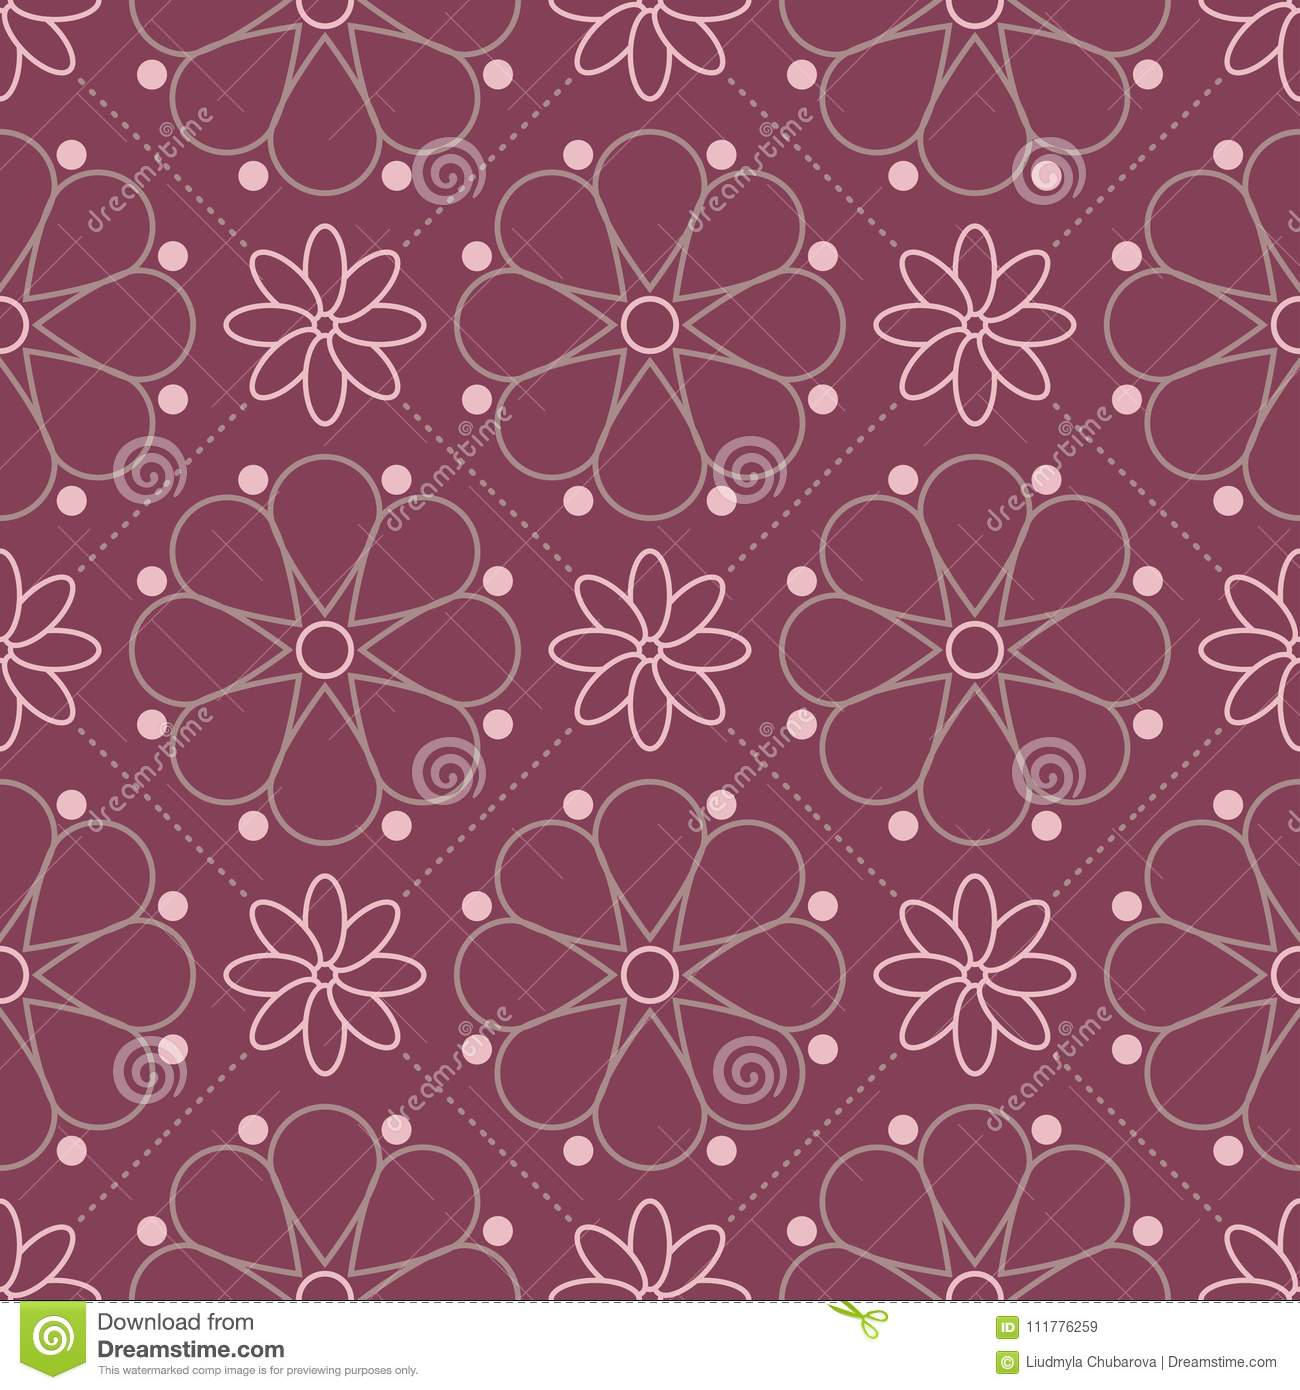 Floral seamless pattern. Purple red background with flower design elements